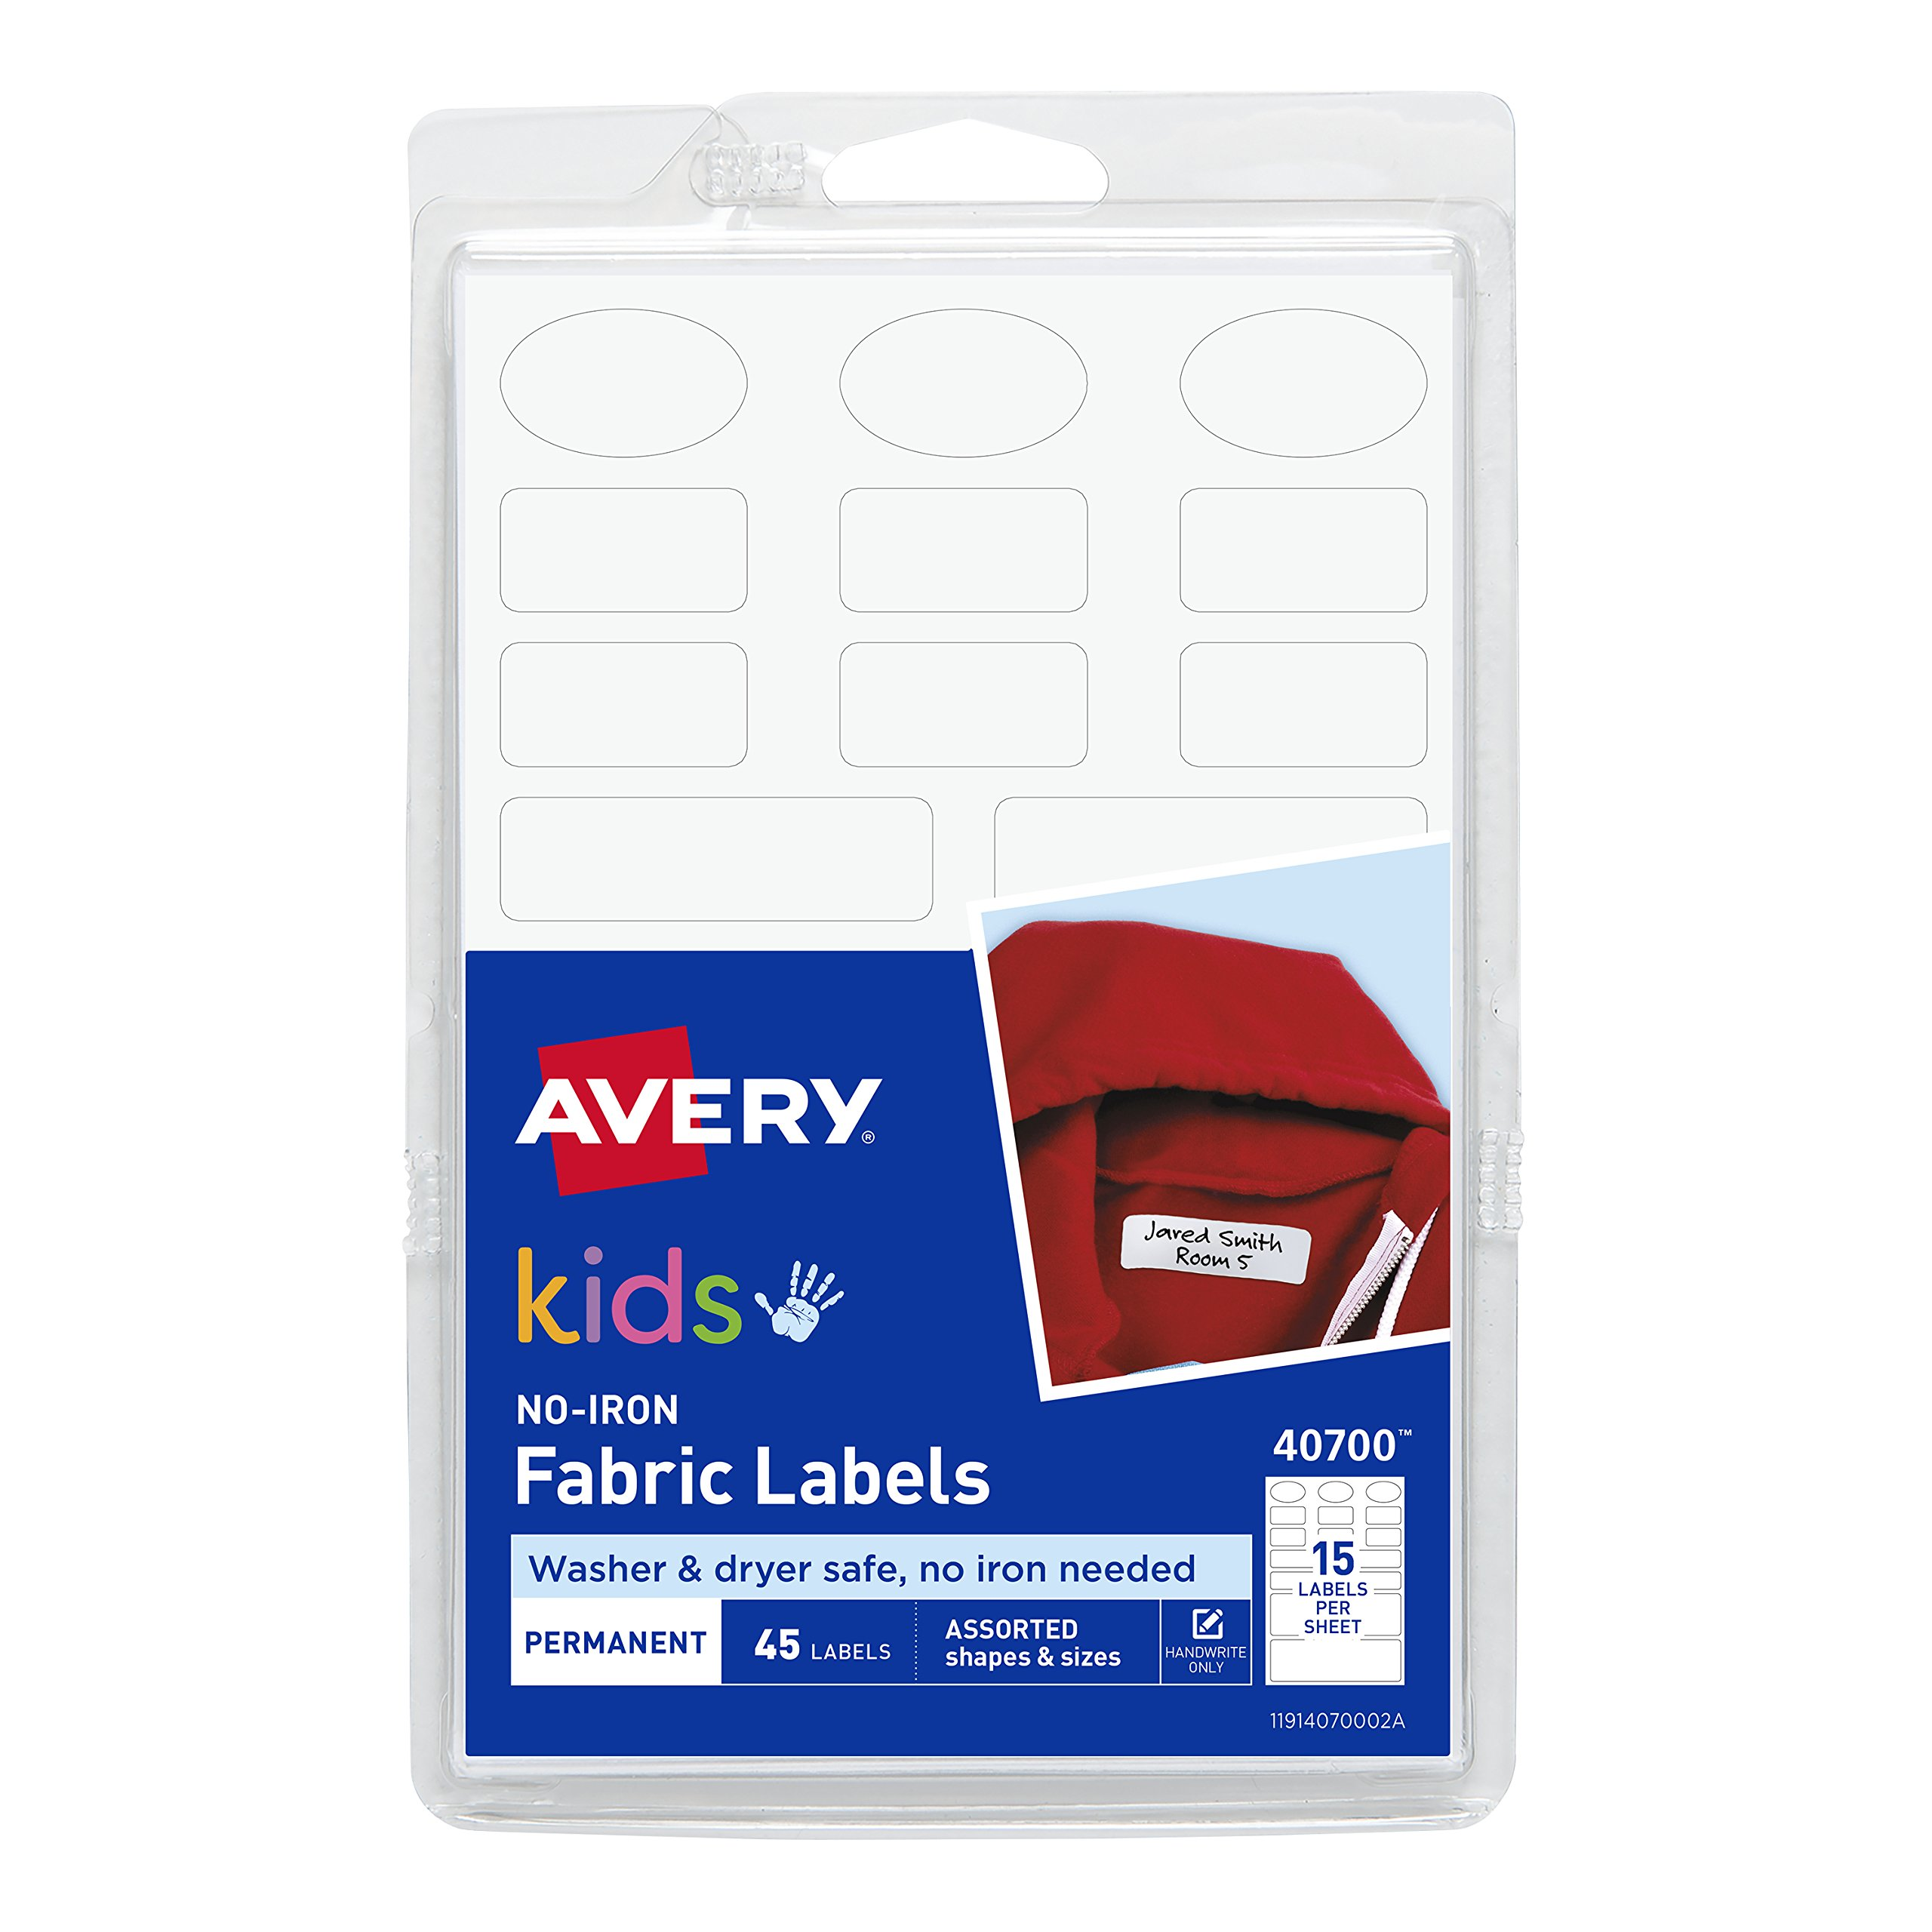 Avery No Iron Kids Clothing Labels, Washer U0026 Dryer Safe, Writable Fabric  Labels